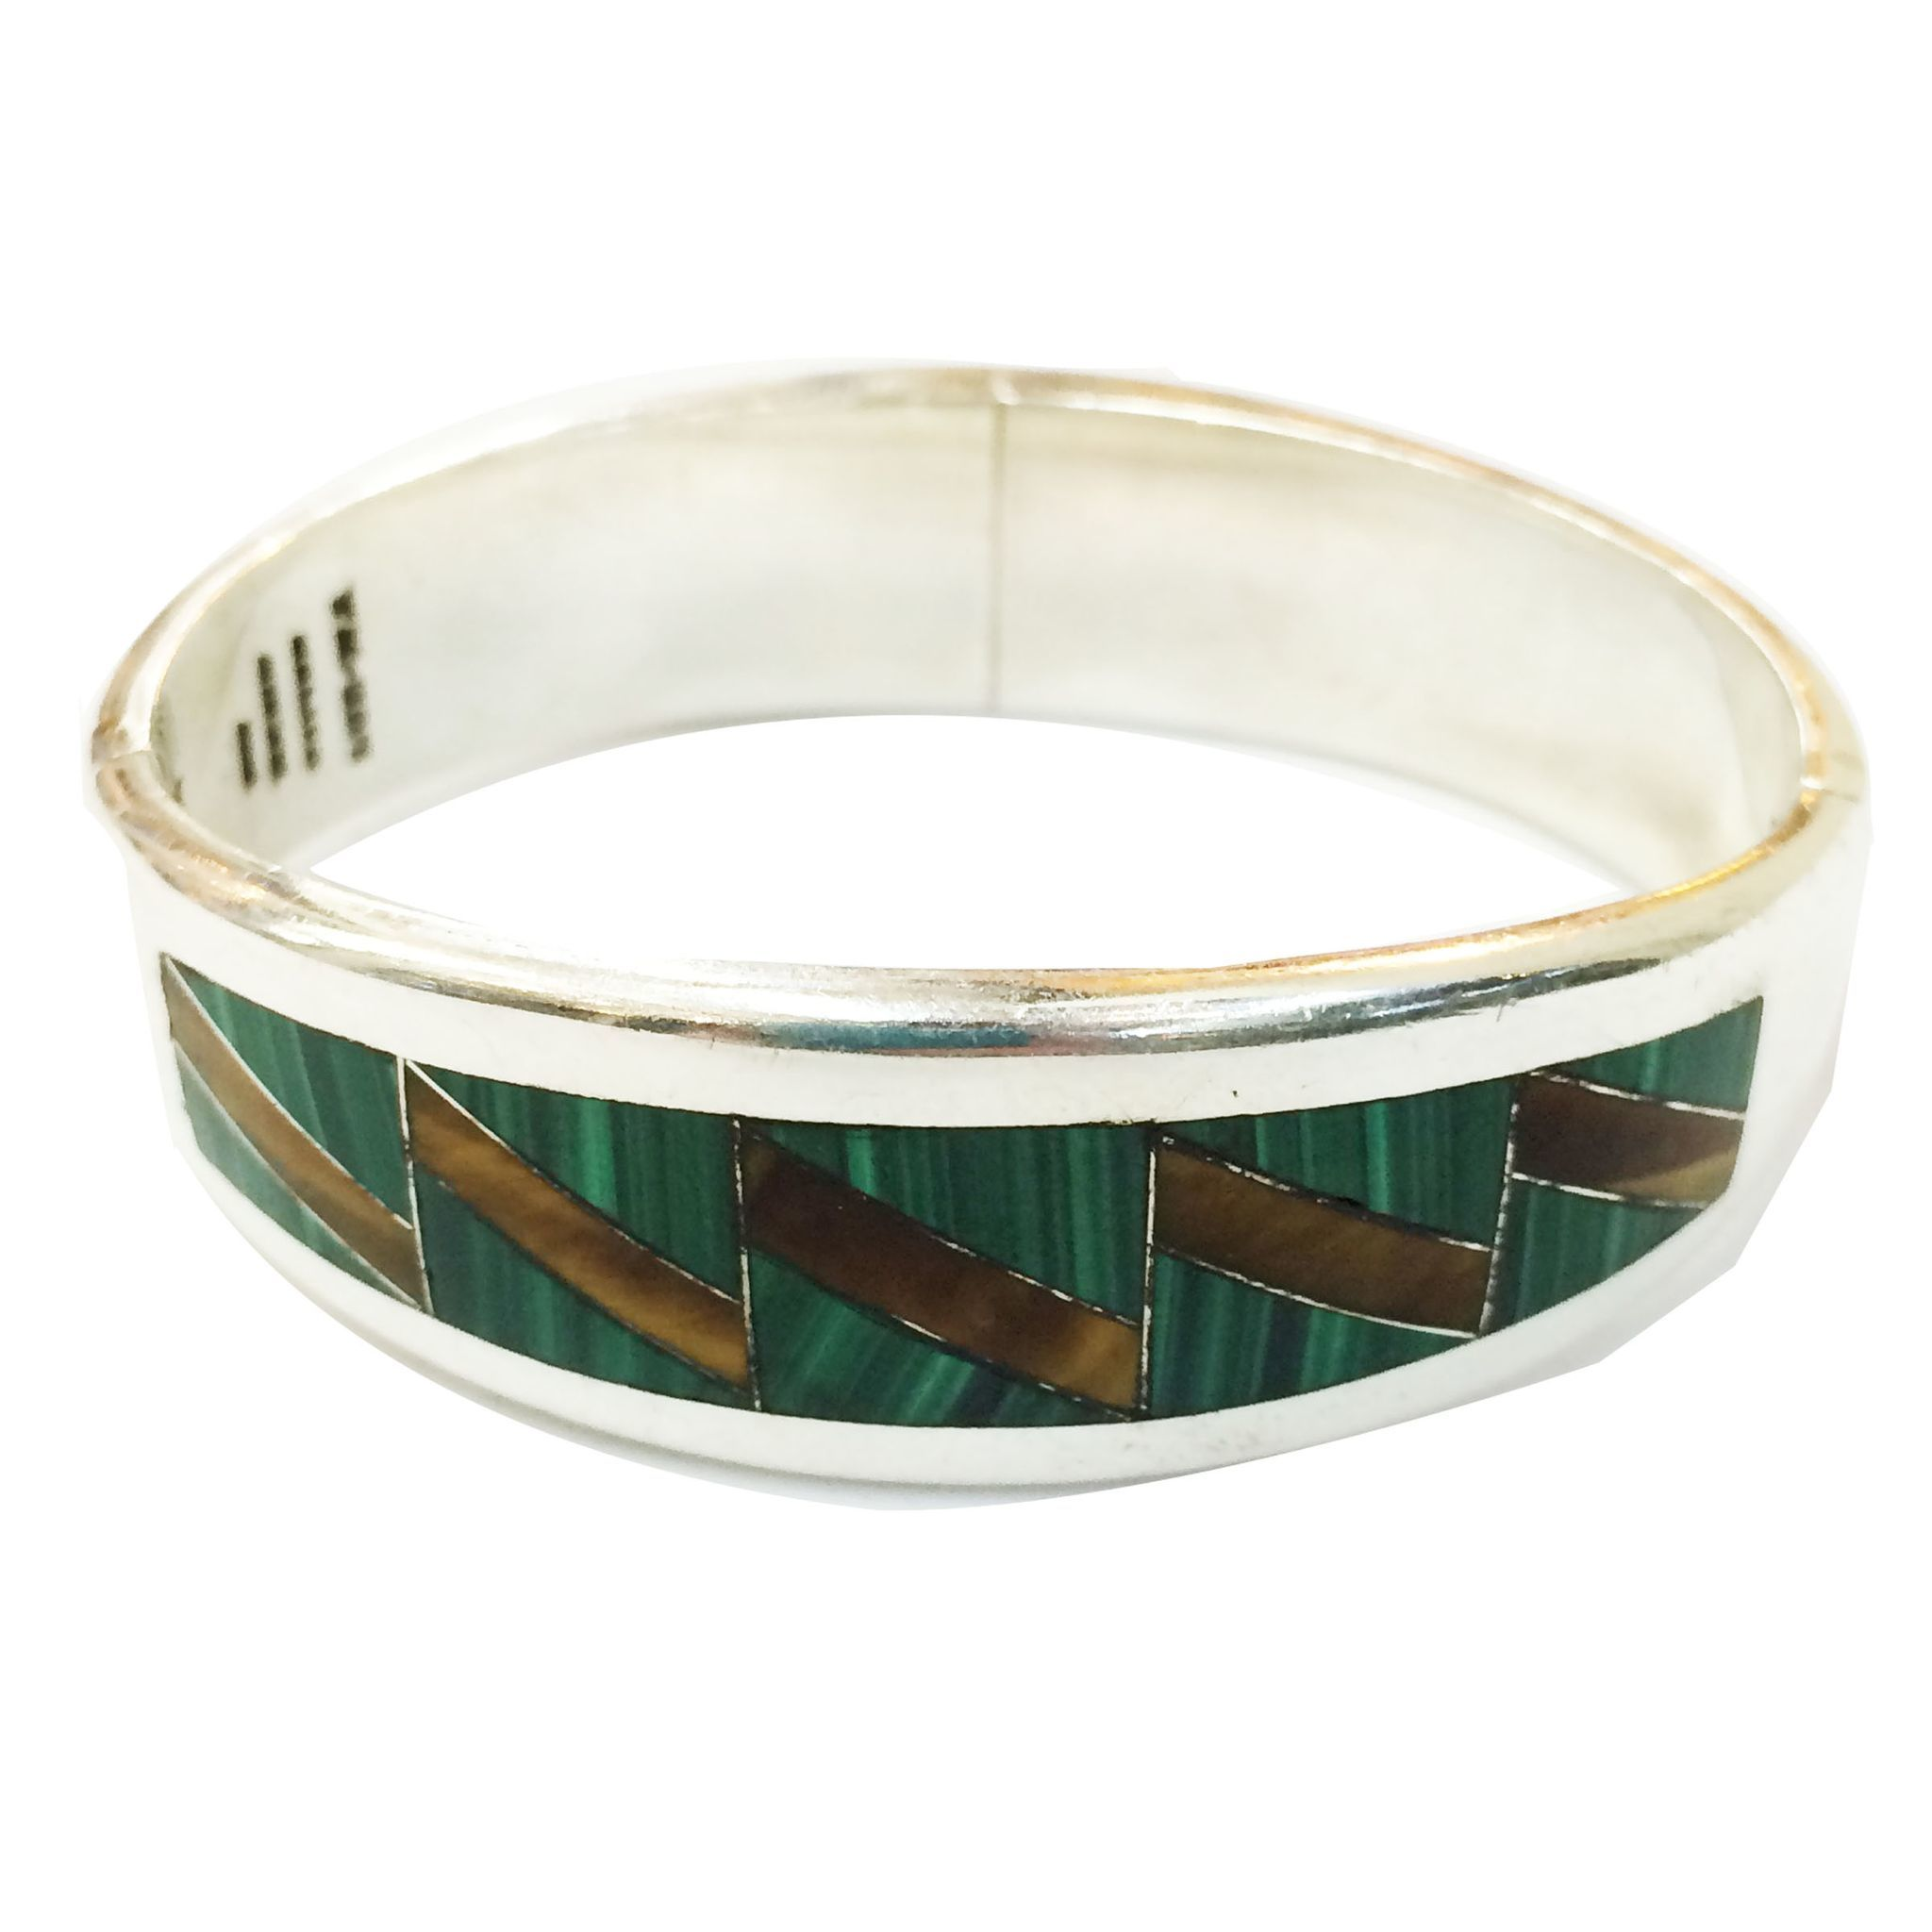 MEXICAN STERLING 950 Hinged Cuff Silver Bracelet with Malachite and Tigers Eye Inlay